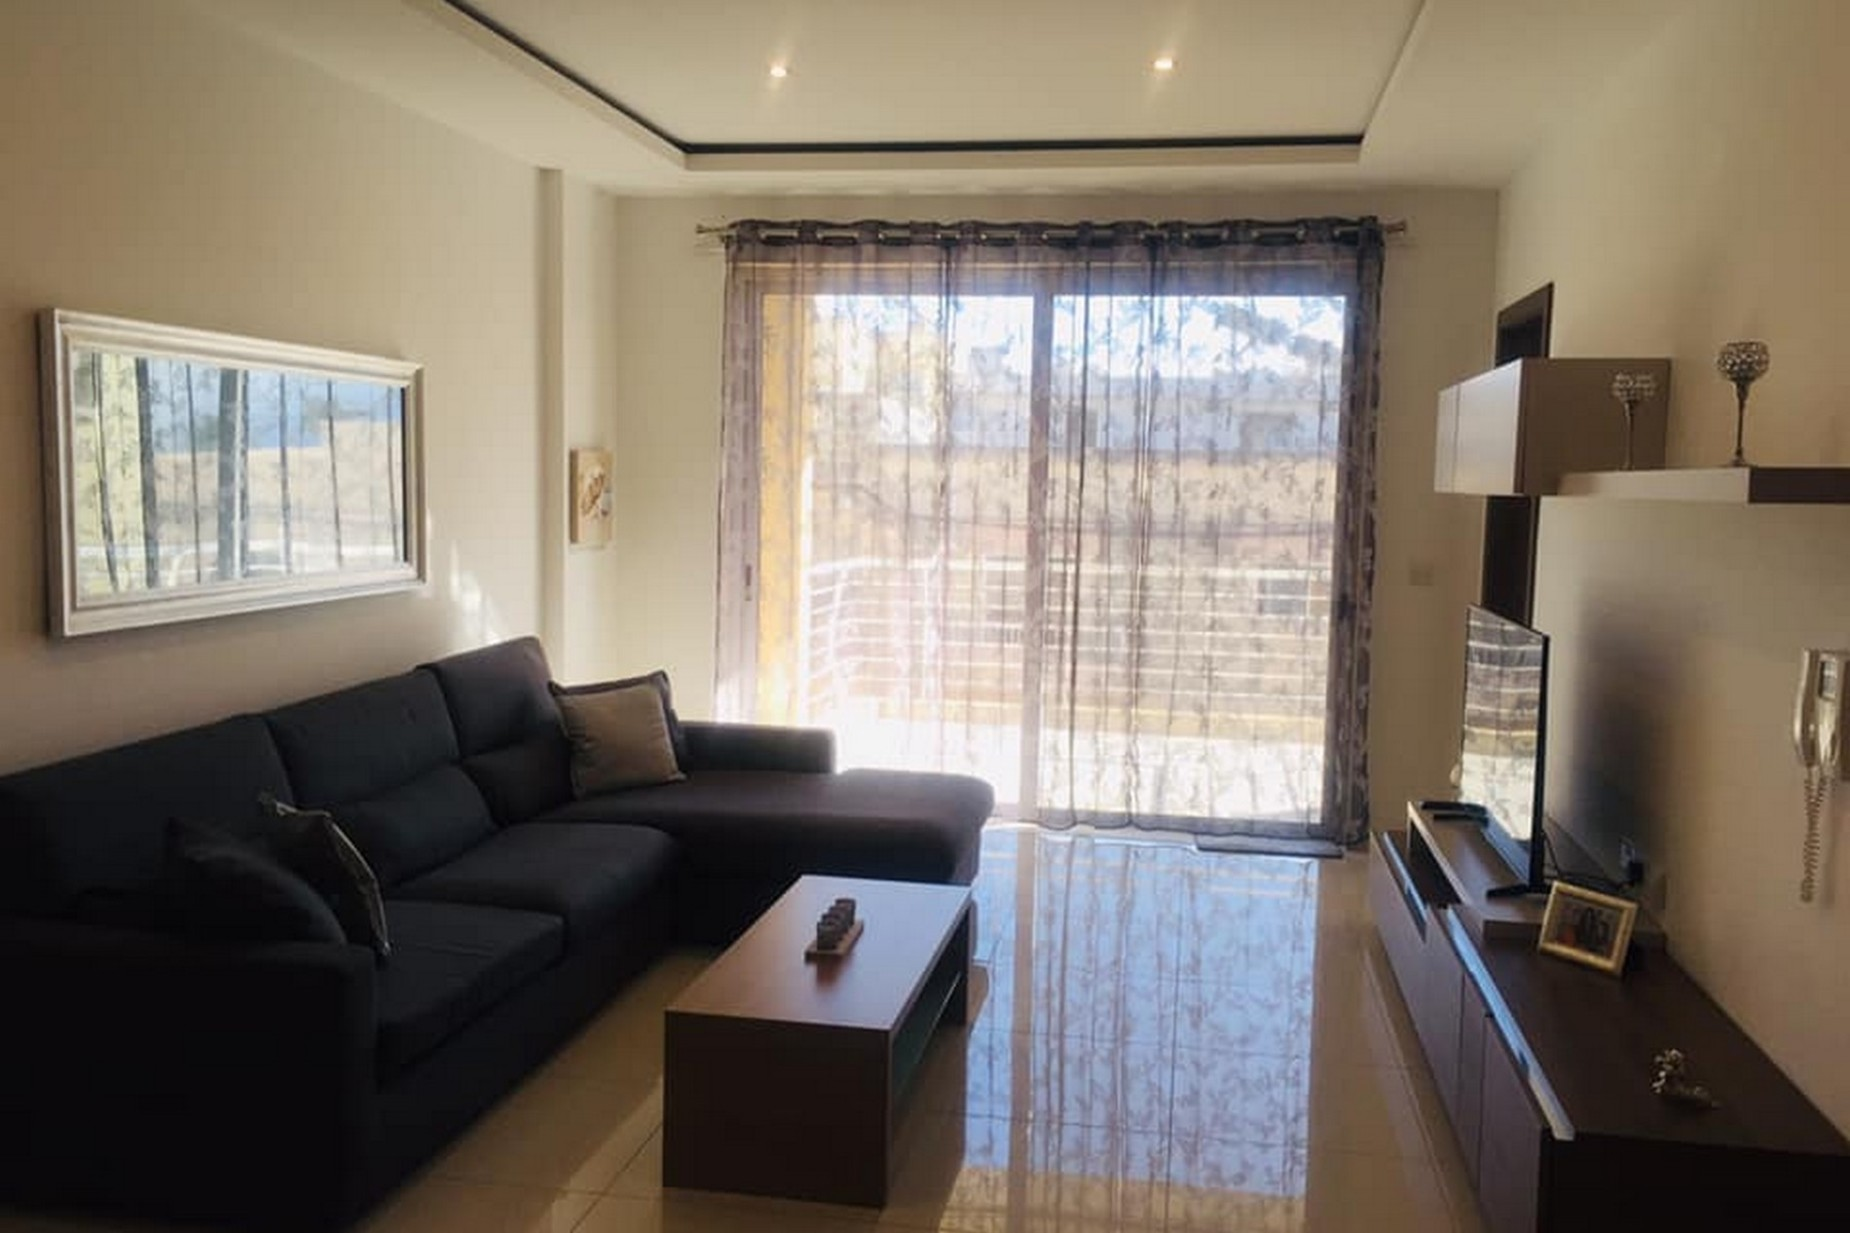 3 bed Apartment For Rent in Attard, Attard - thumb 2